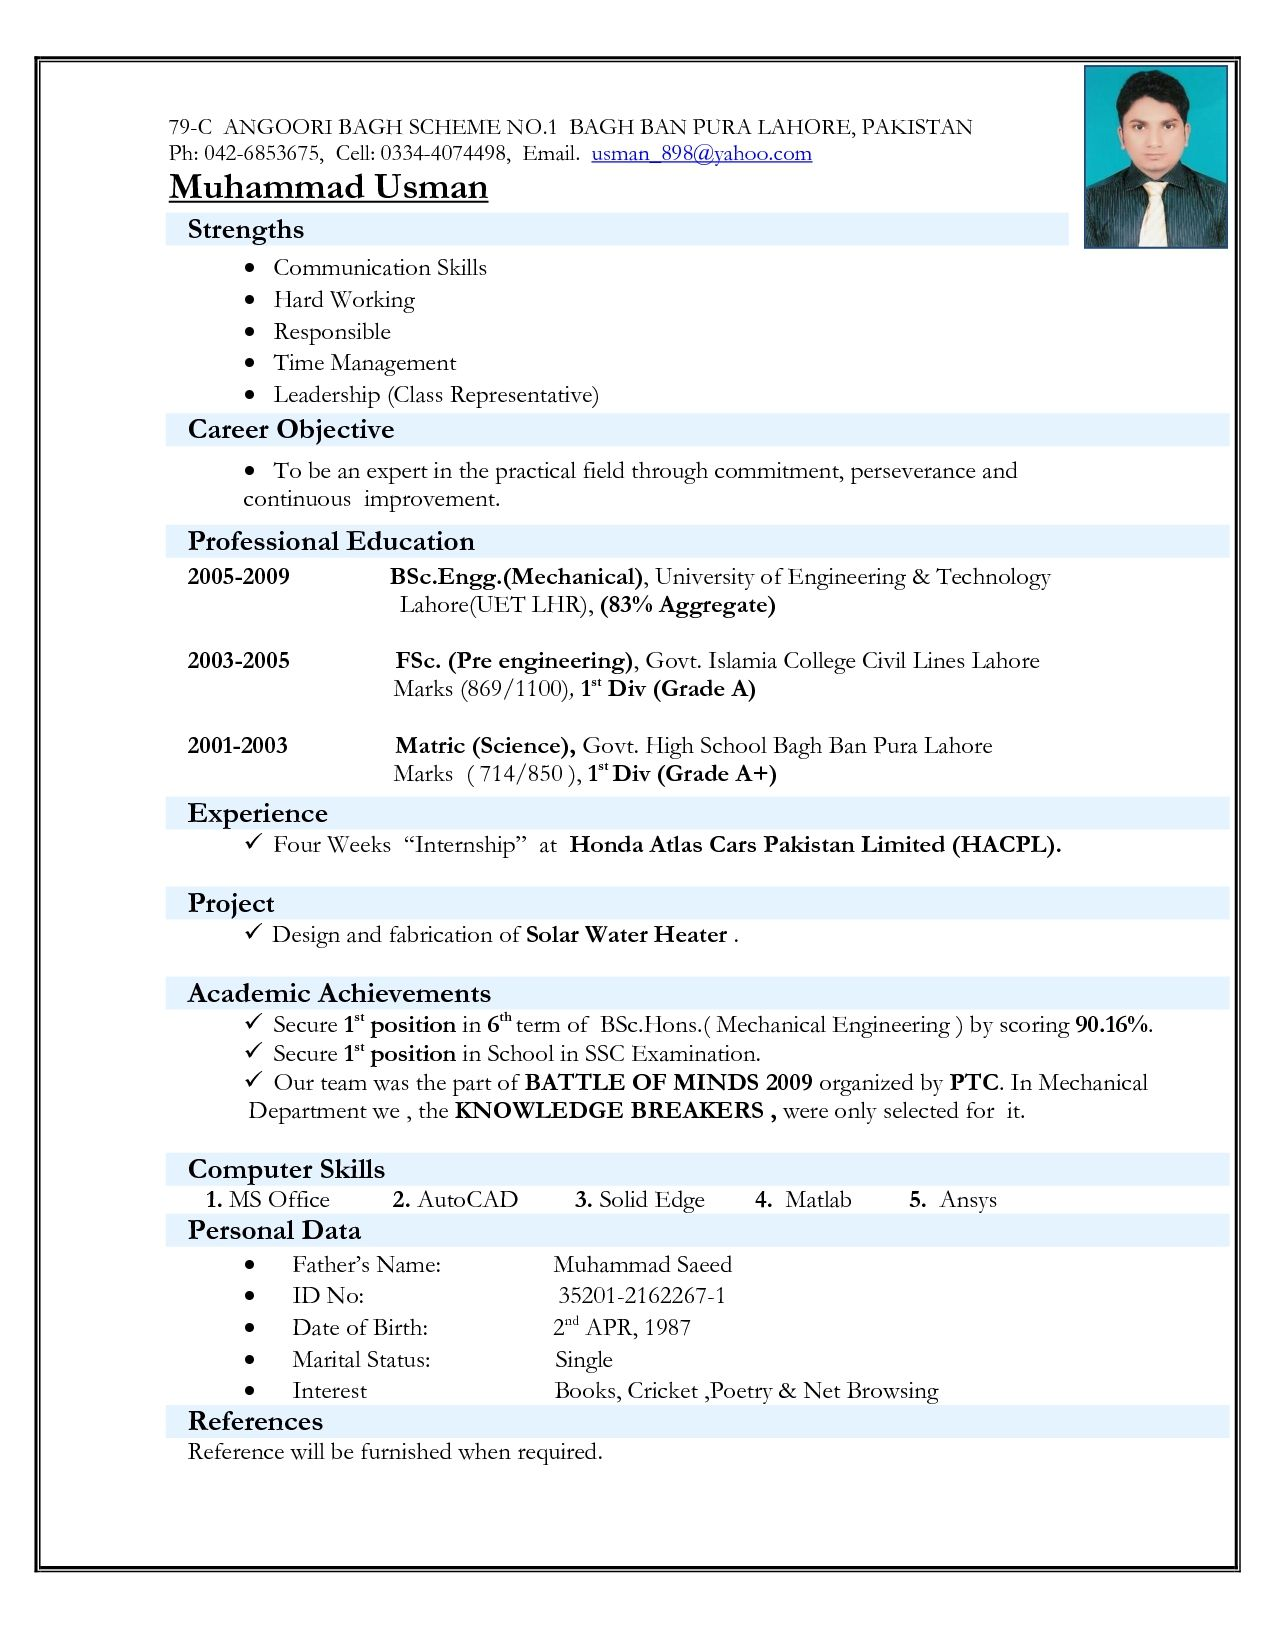 resume format for mechanical engineering freshers it resume best cv format for freshers mechanical engineers